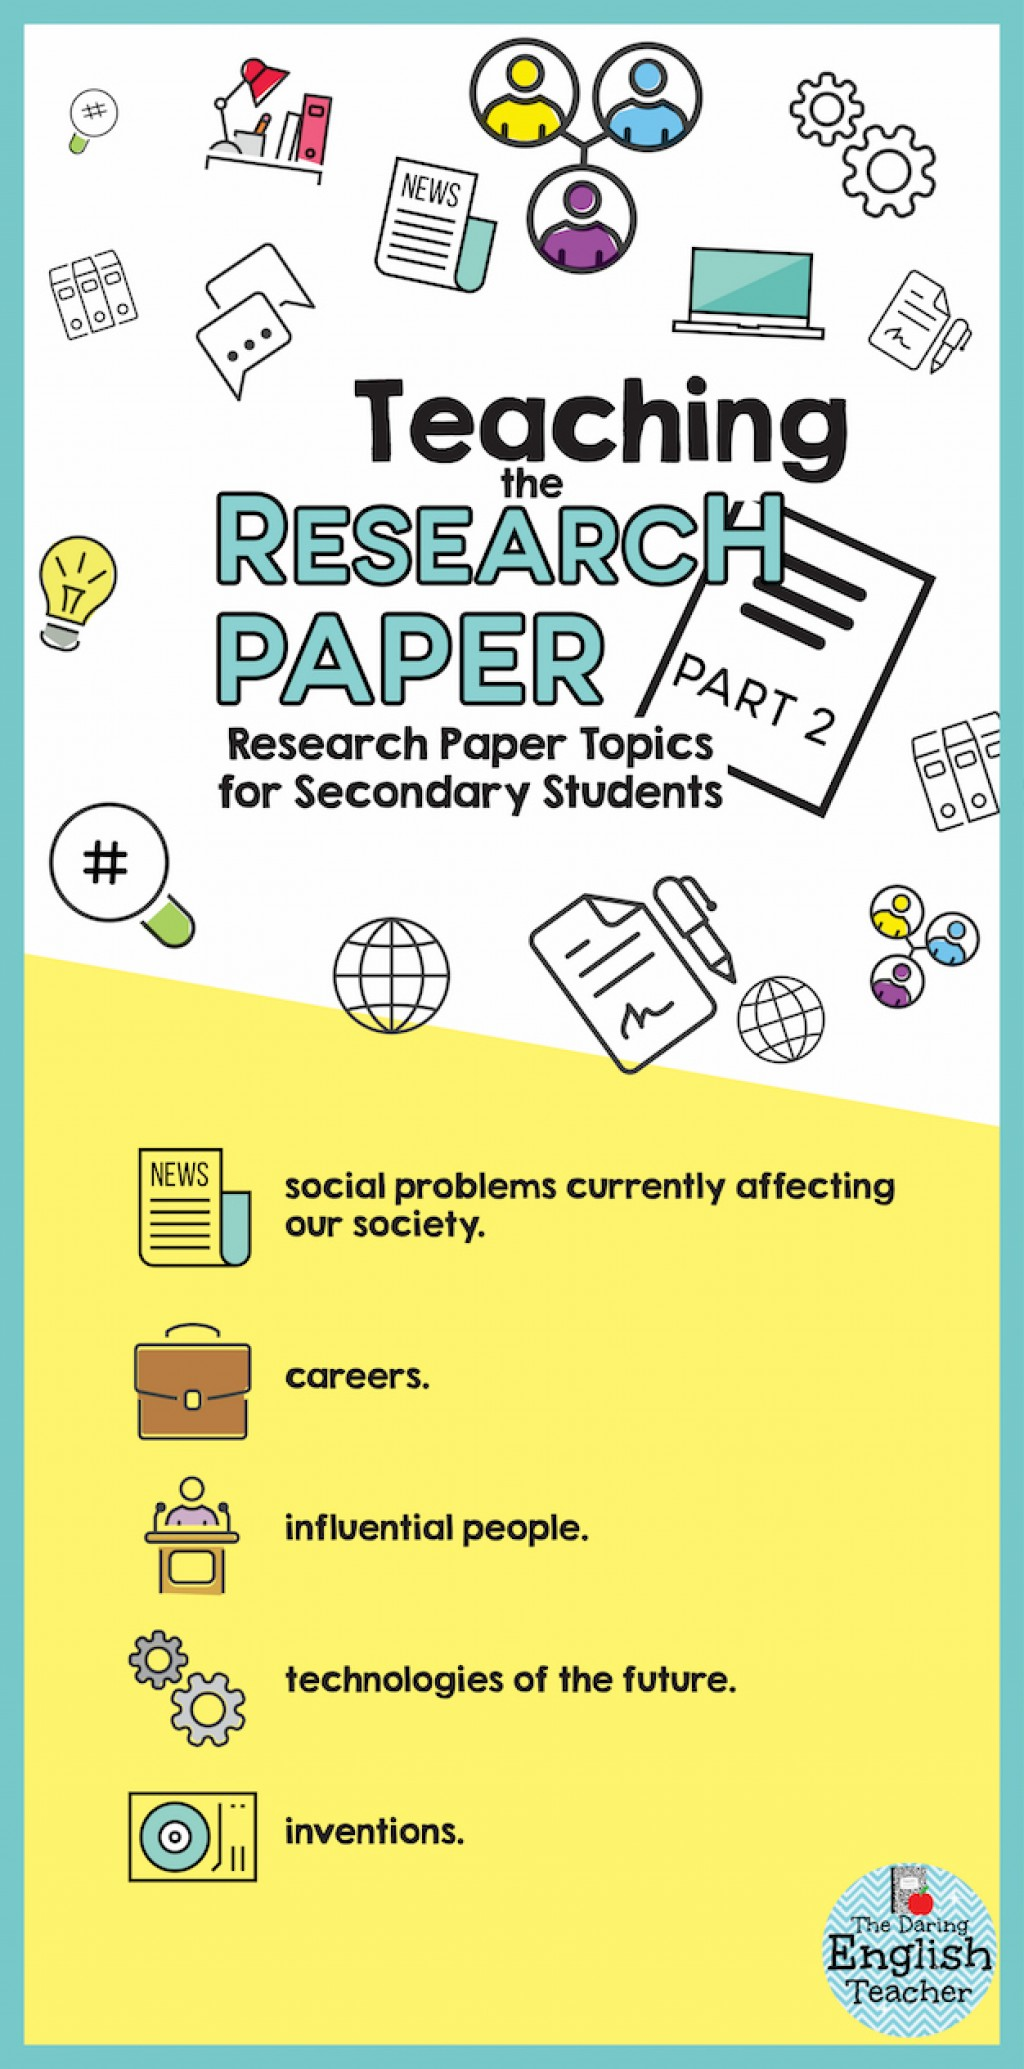 020 Infographic2bp22b2 Research Paper Topic For Unusual A Topics In Sociology On Frankenstein Education The Philippines Large